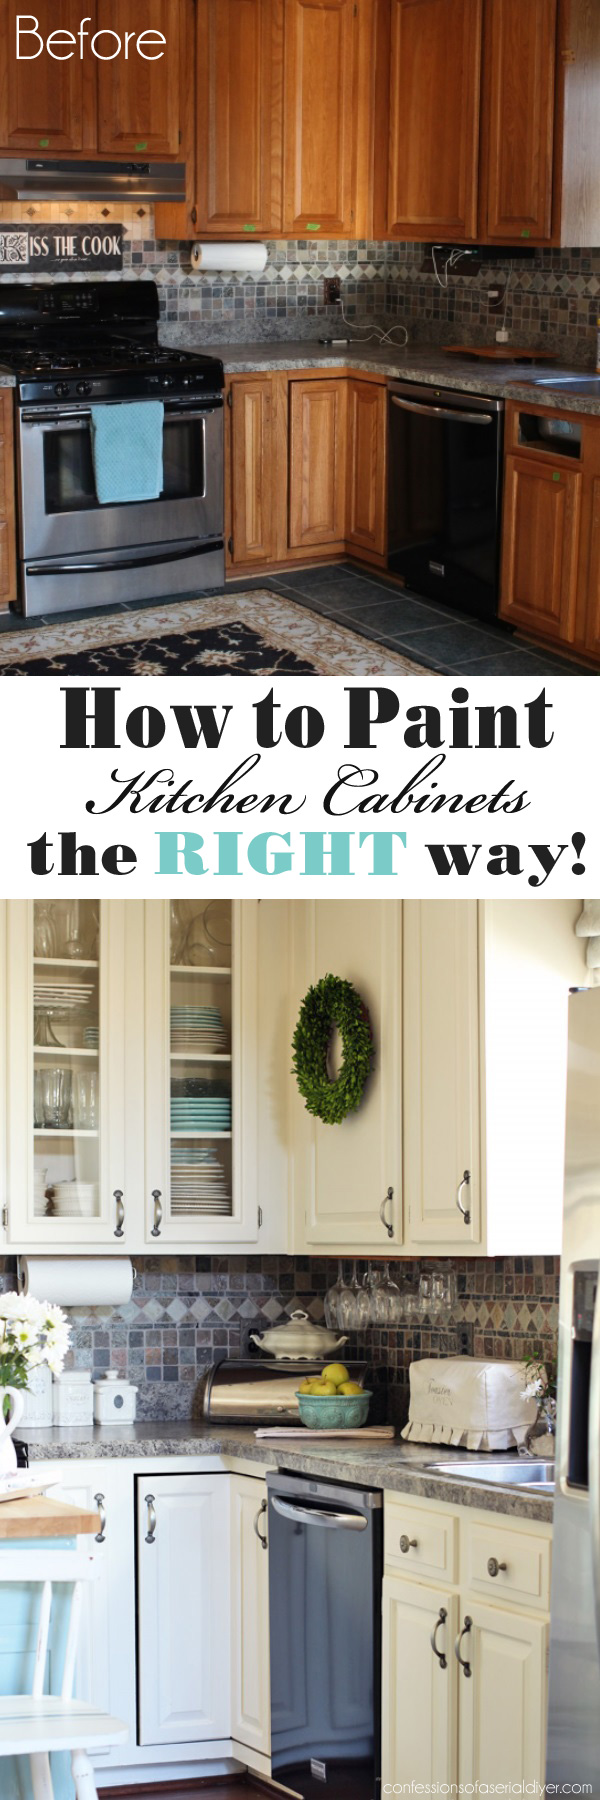 How to paint kitchen cabinets a step by step guide confessions how to paint kitchen cabinets the right way from confessions of a serial do it solutioingenieria Images